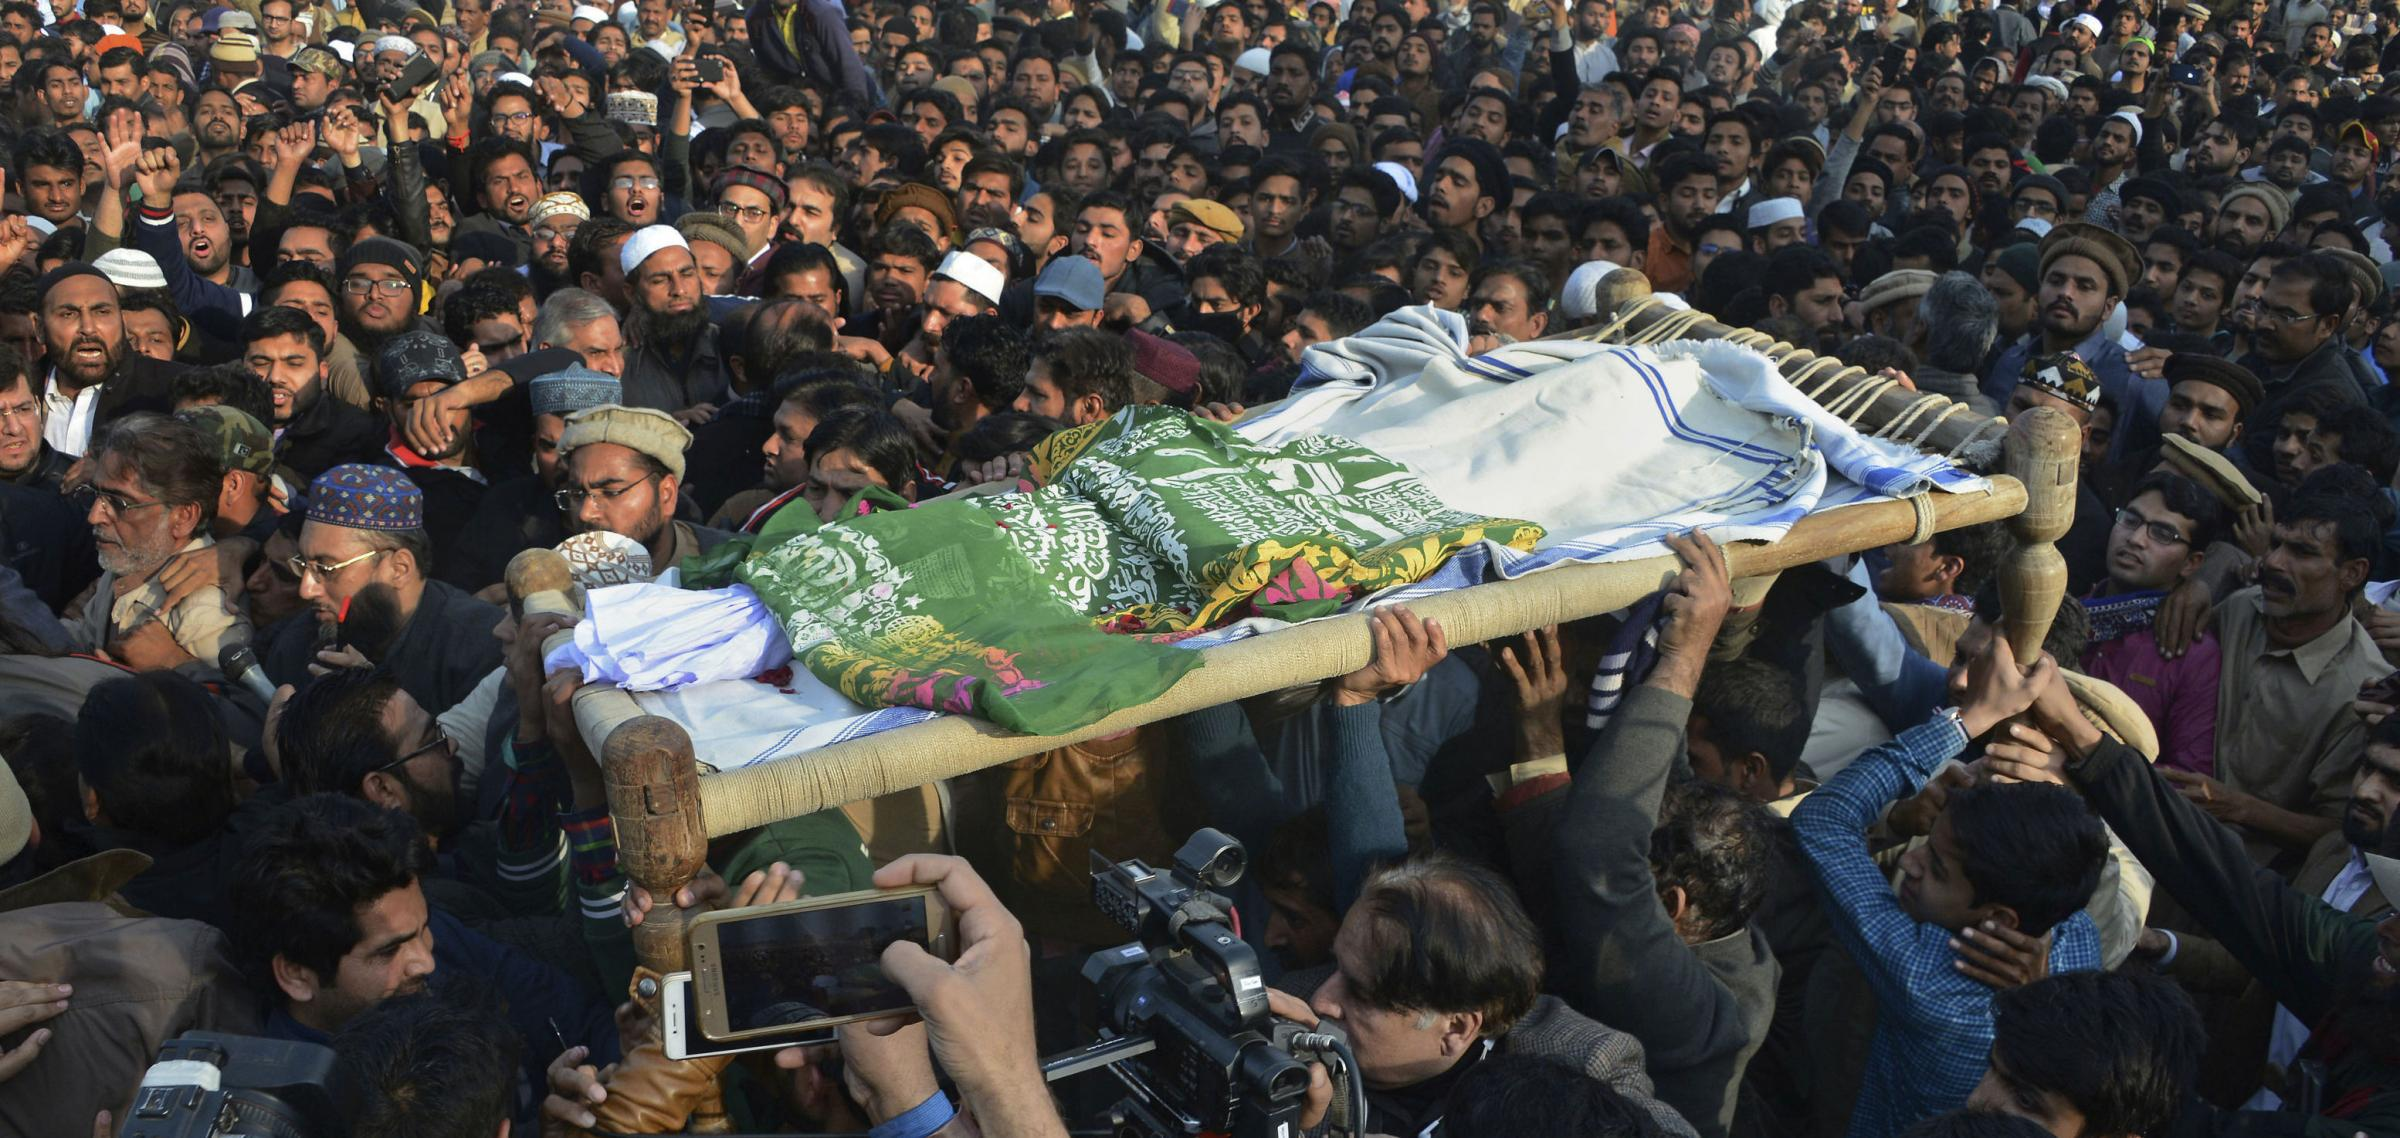 Crowds lined the streets to mourn the loss of Zainab Ansari before bloody protests began. Photograph: AP